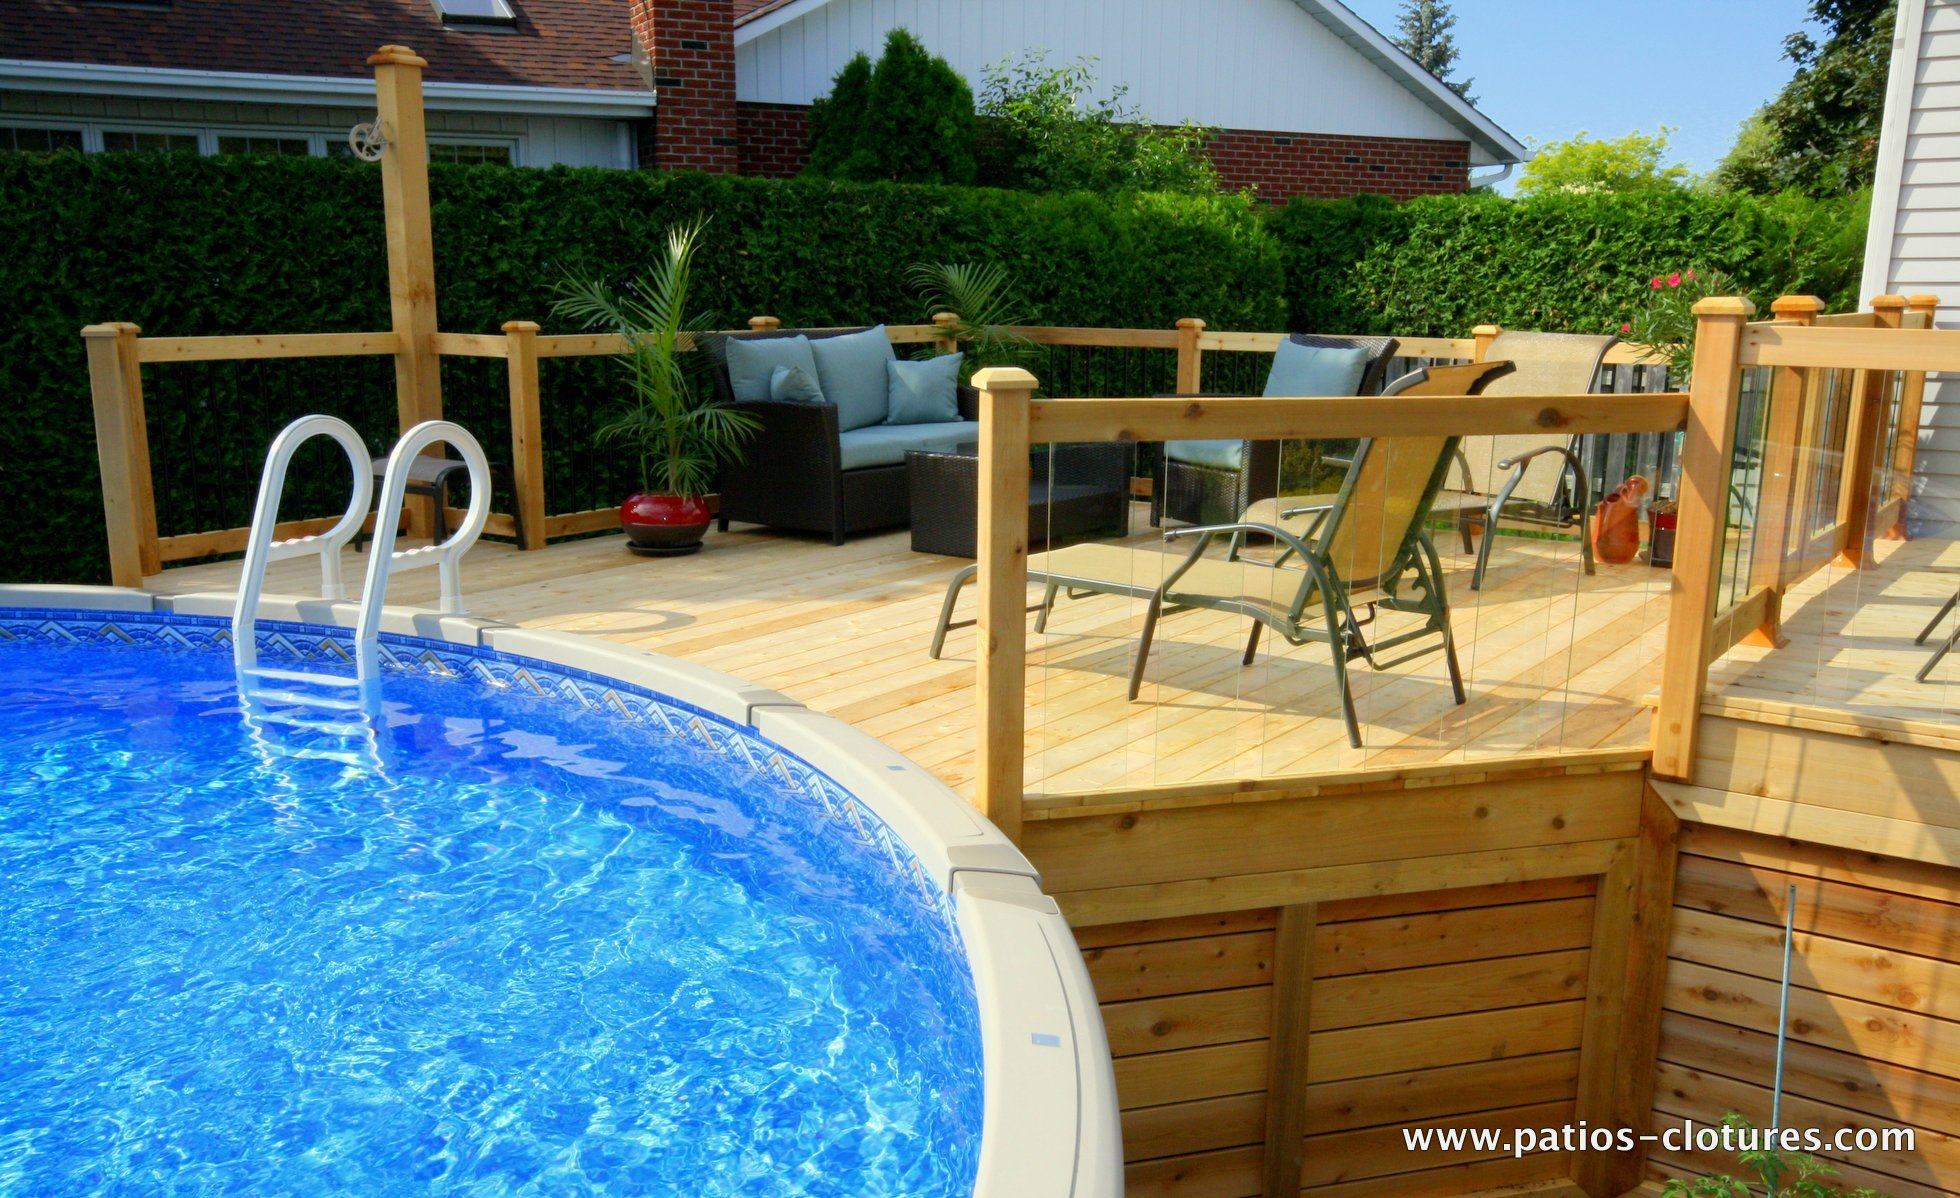 Patio en bois avec piscine hors terre modern patio outdoor for Cloture de piscine hors terre